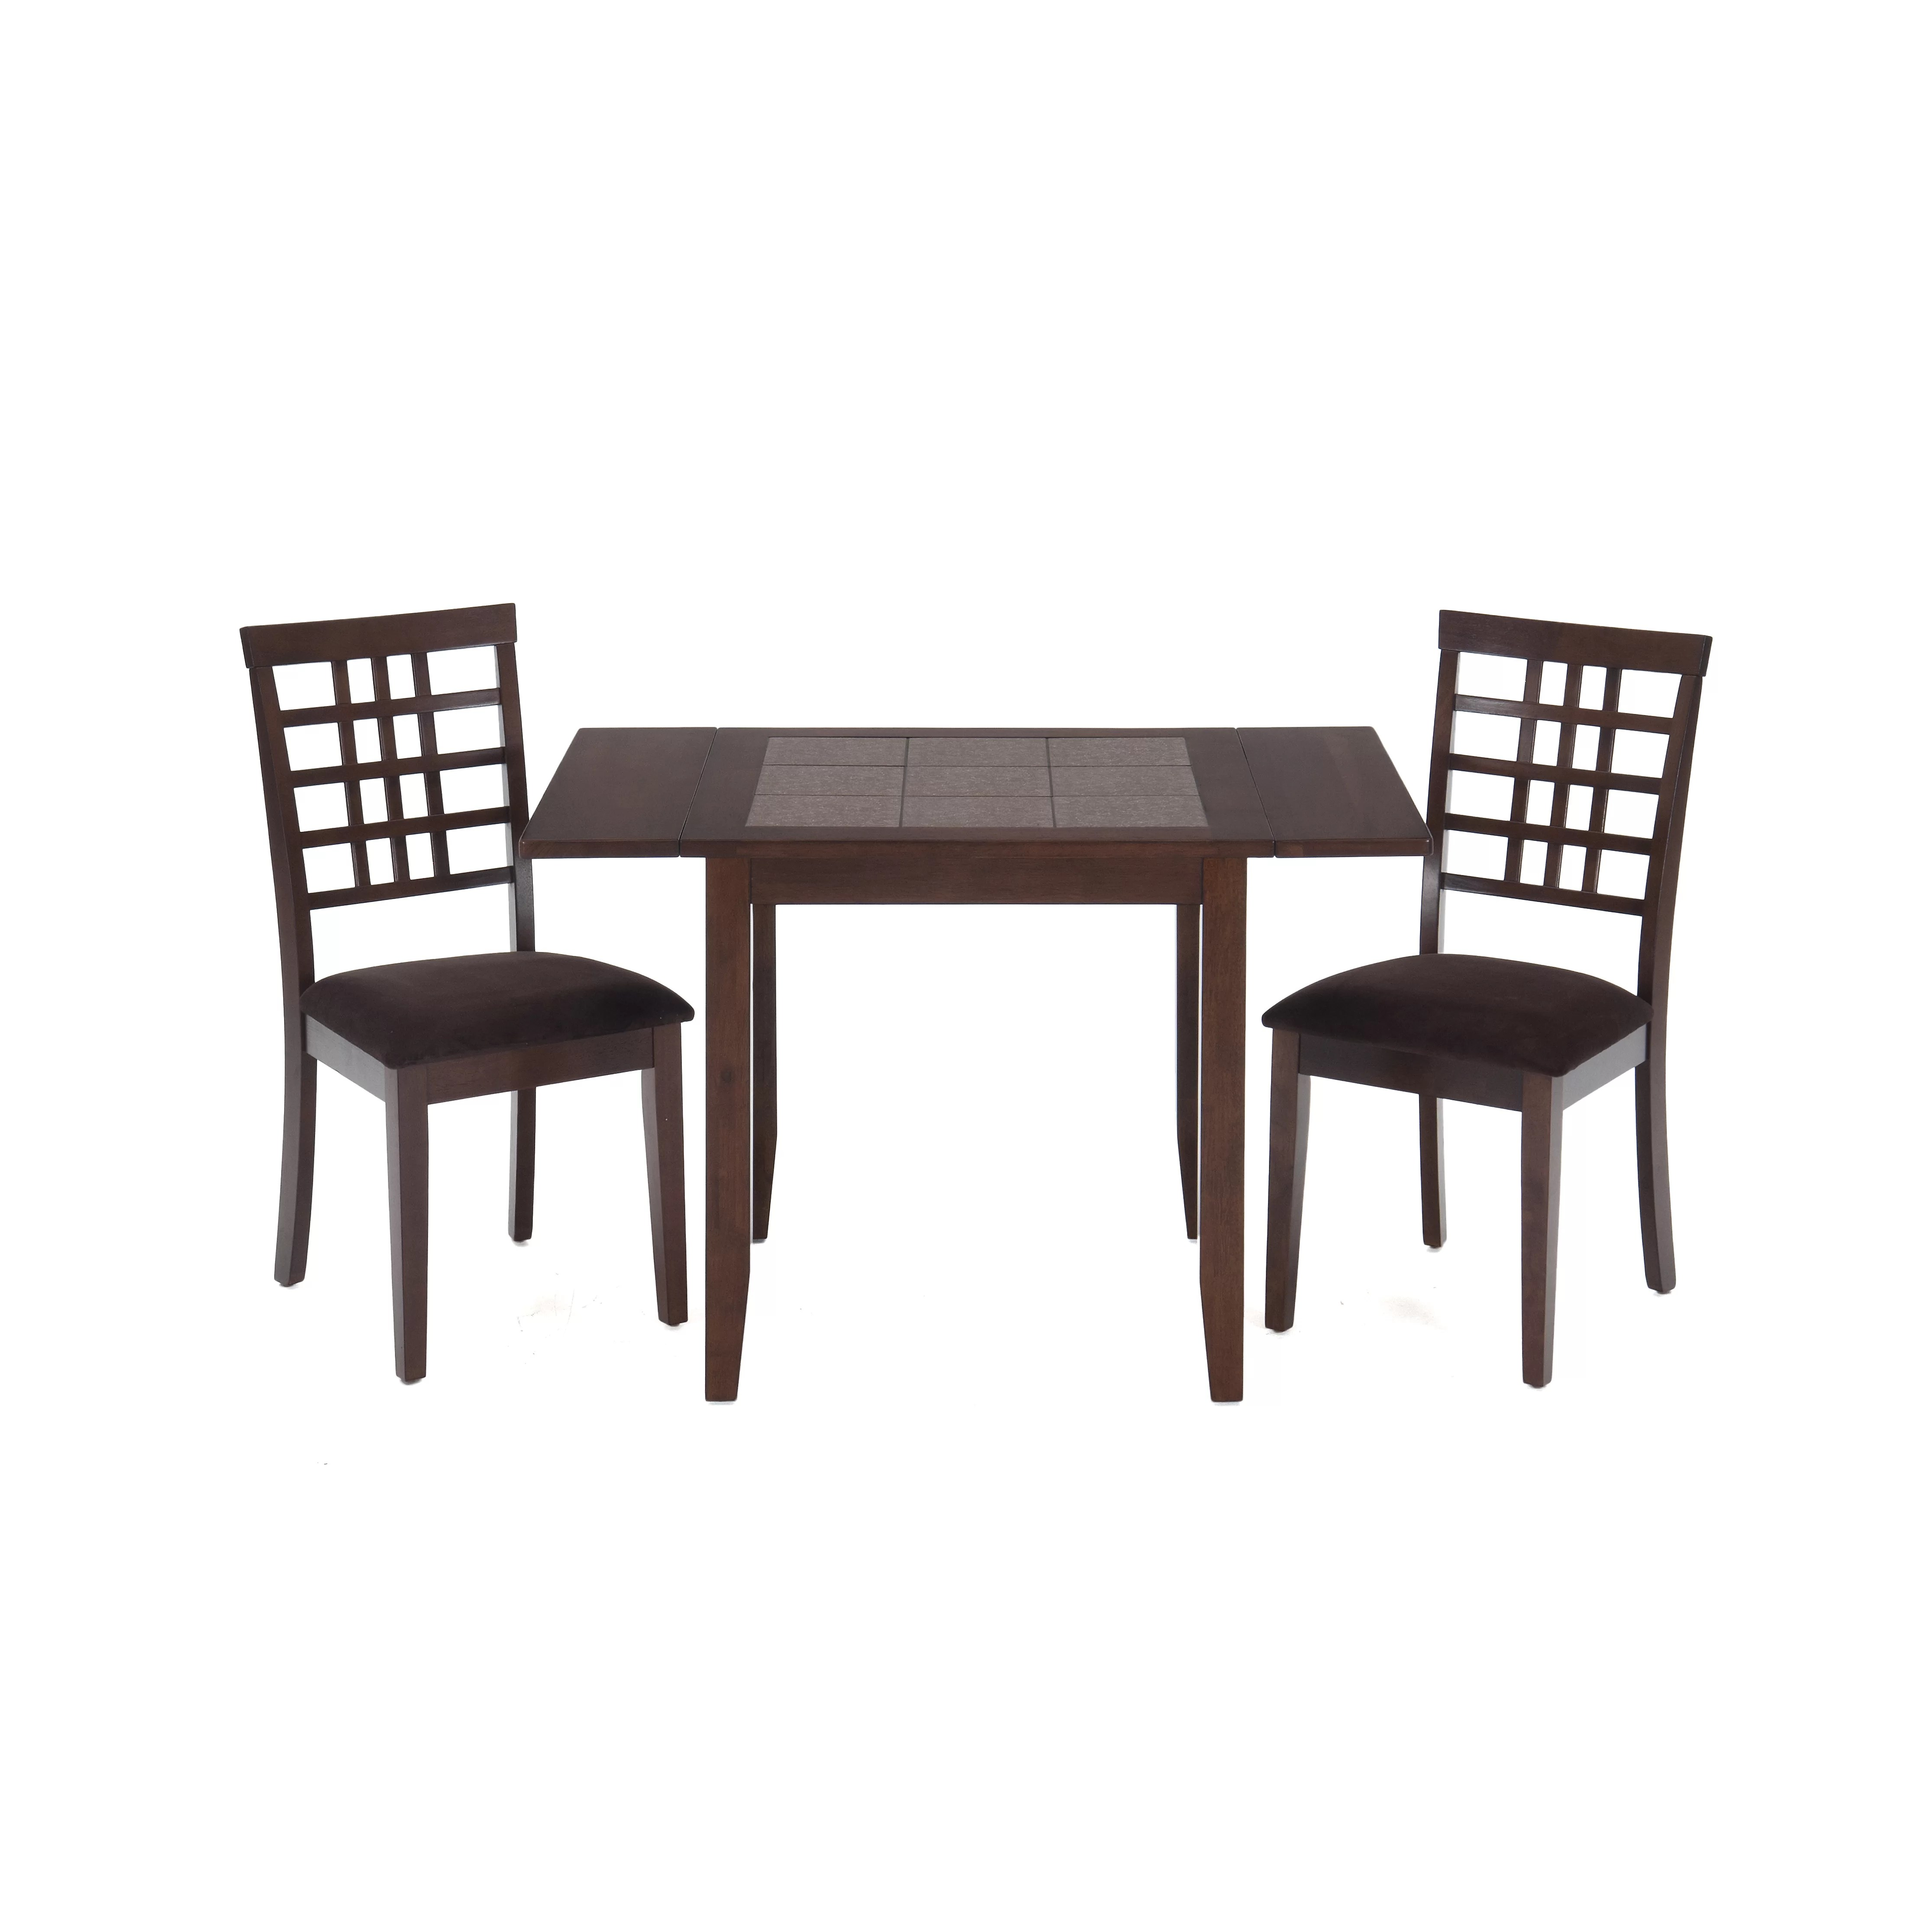 Jofran Chairs for Jofran Dinette Set  Reviews  Wayfair